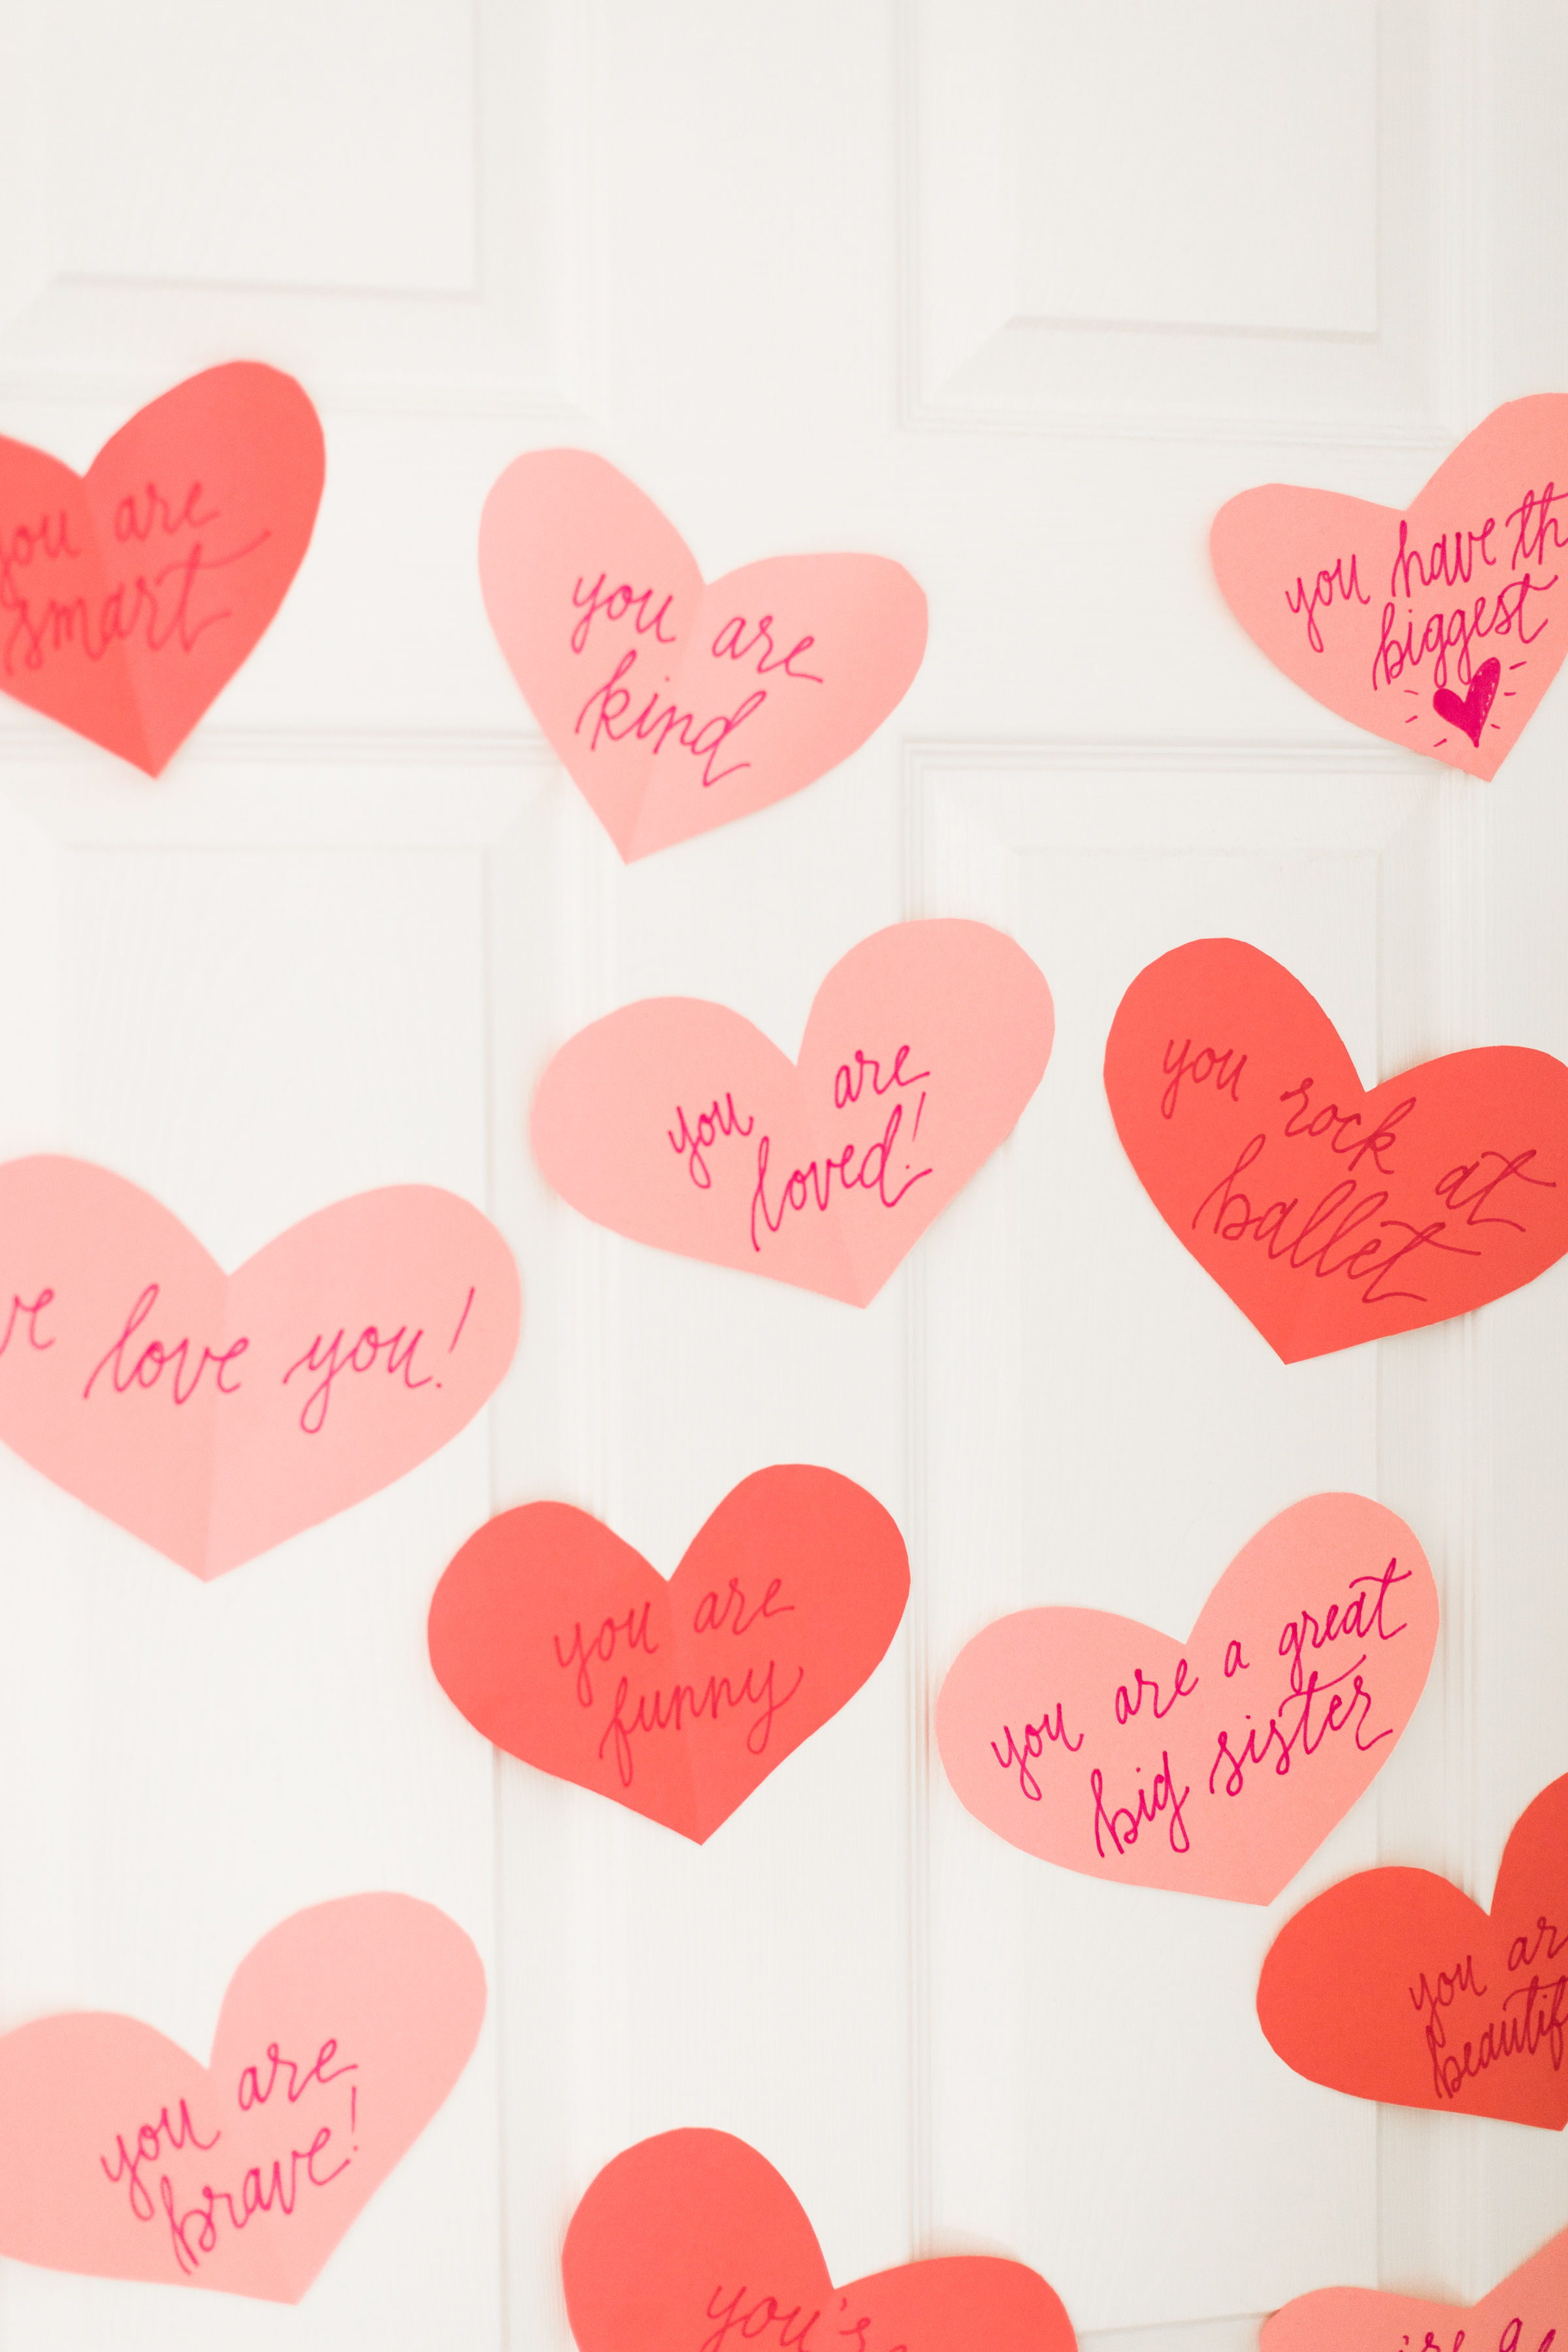 A DIY heart attack - paper hearts spelling out the reasons you love your Valentine - are sure to surprise and delight kids and grown-ups alike! | glitterinc.com